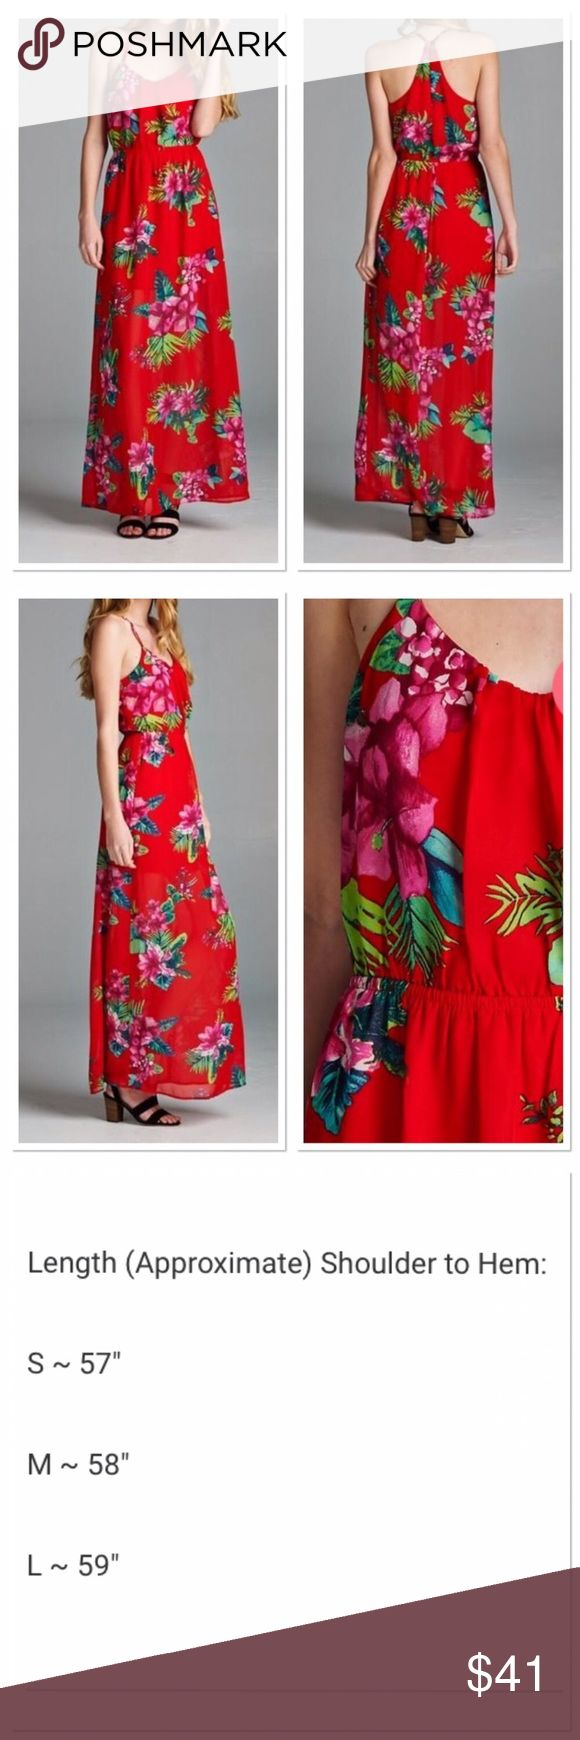 Red Floral Maxi Dress Beautiful Red Floral Maxi Dress Flowy fit Elastic waist Buttonhole at T-back neck 100% polyester  Lined approximately to thigh area then sheer  All measurements taken laying flat!! Small: Bust 16 in. Waist: 16 in.  Medium: Bust: 17 in. Waist: 17 in.  Small approximate 2/4 Medium approximate 6/8  🚨Price Firm, No Holds, No Trades. Direct from wholesaler without tags🚨 Boutique Dresses Maxi